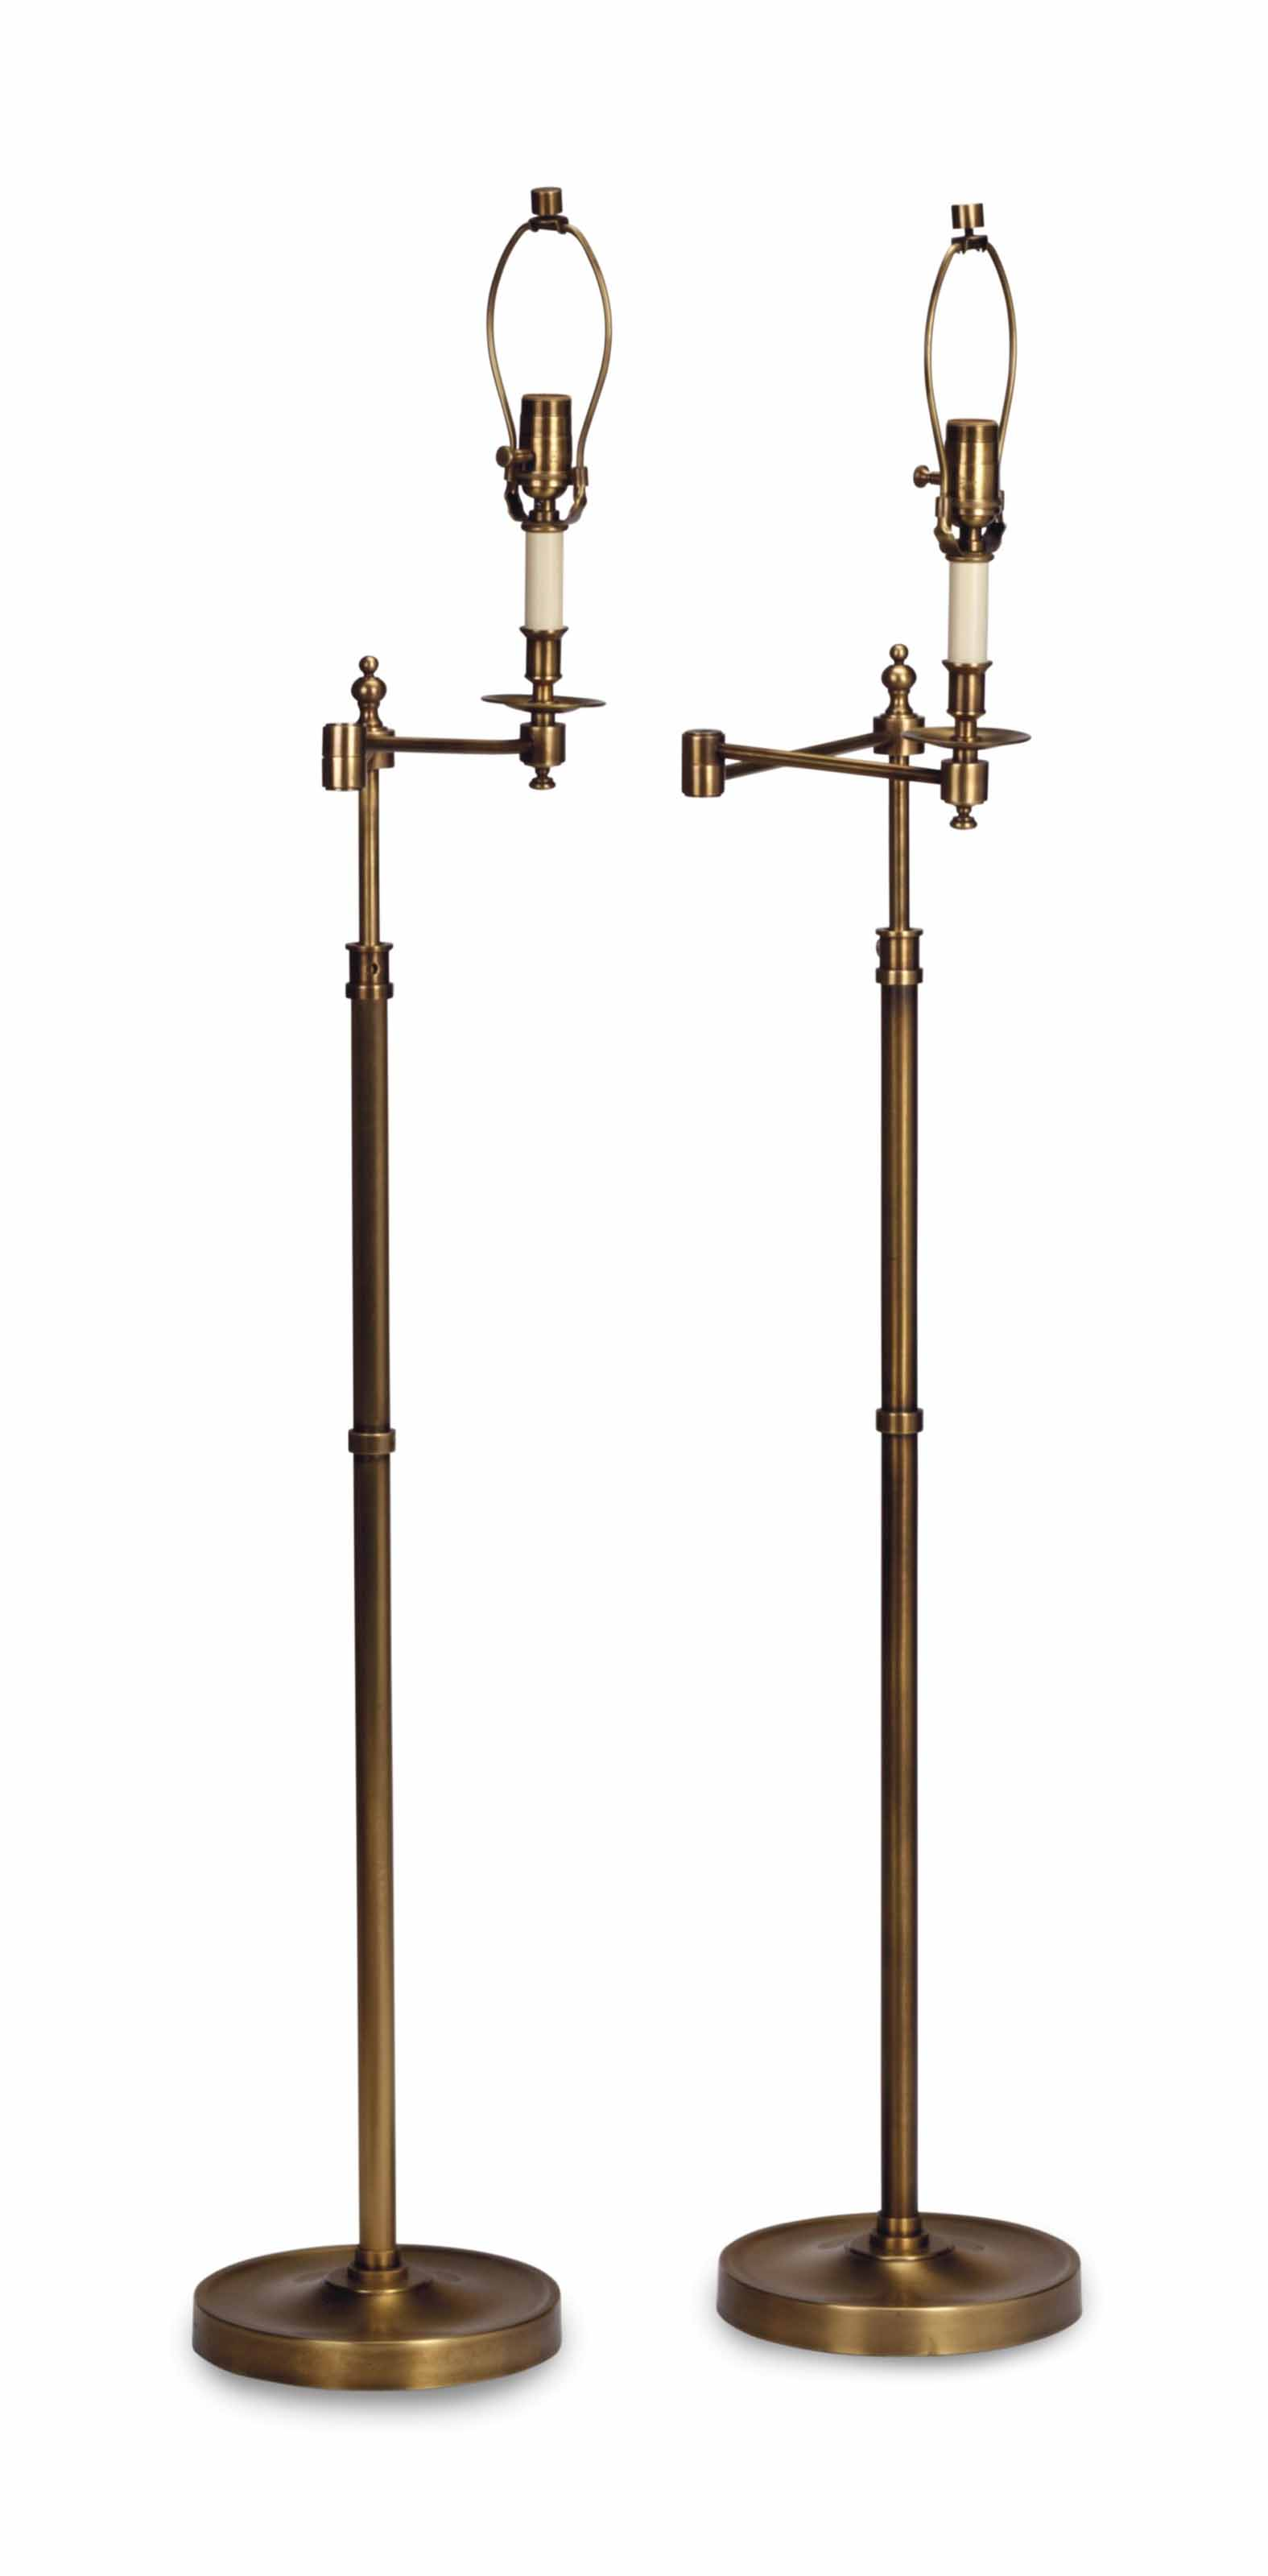 A PAIR OF BRASS SWING ARM FLOO